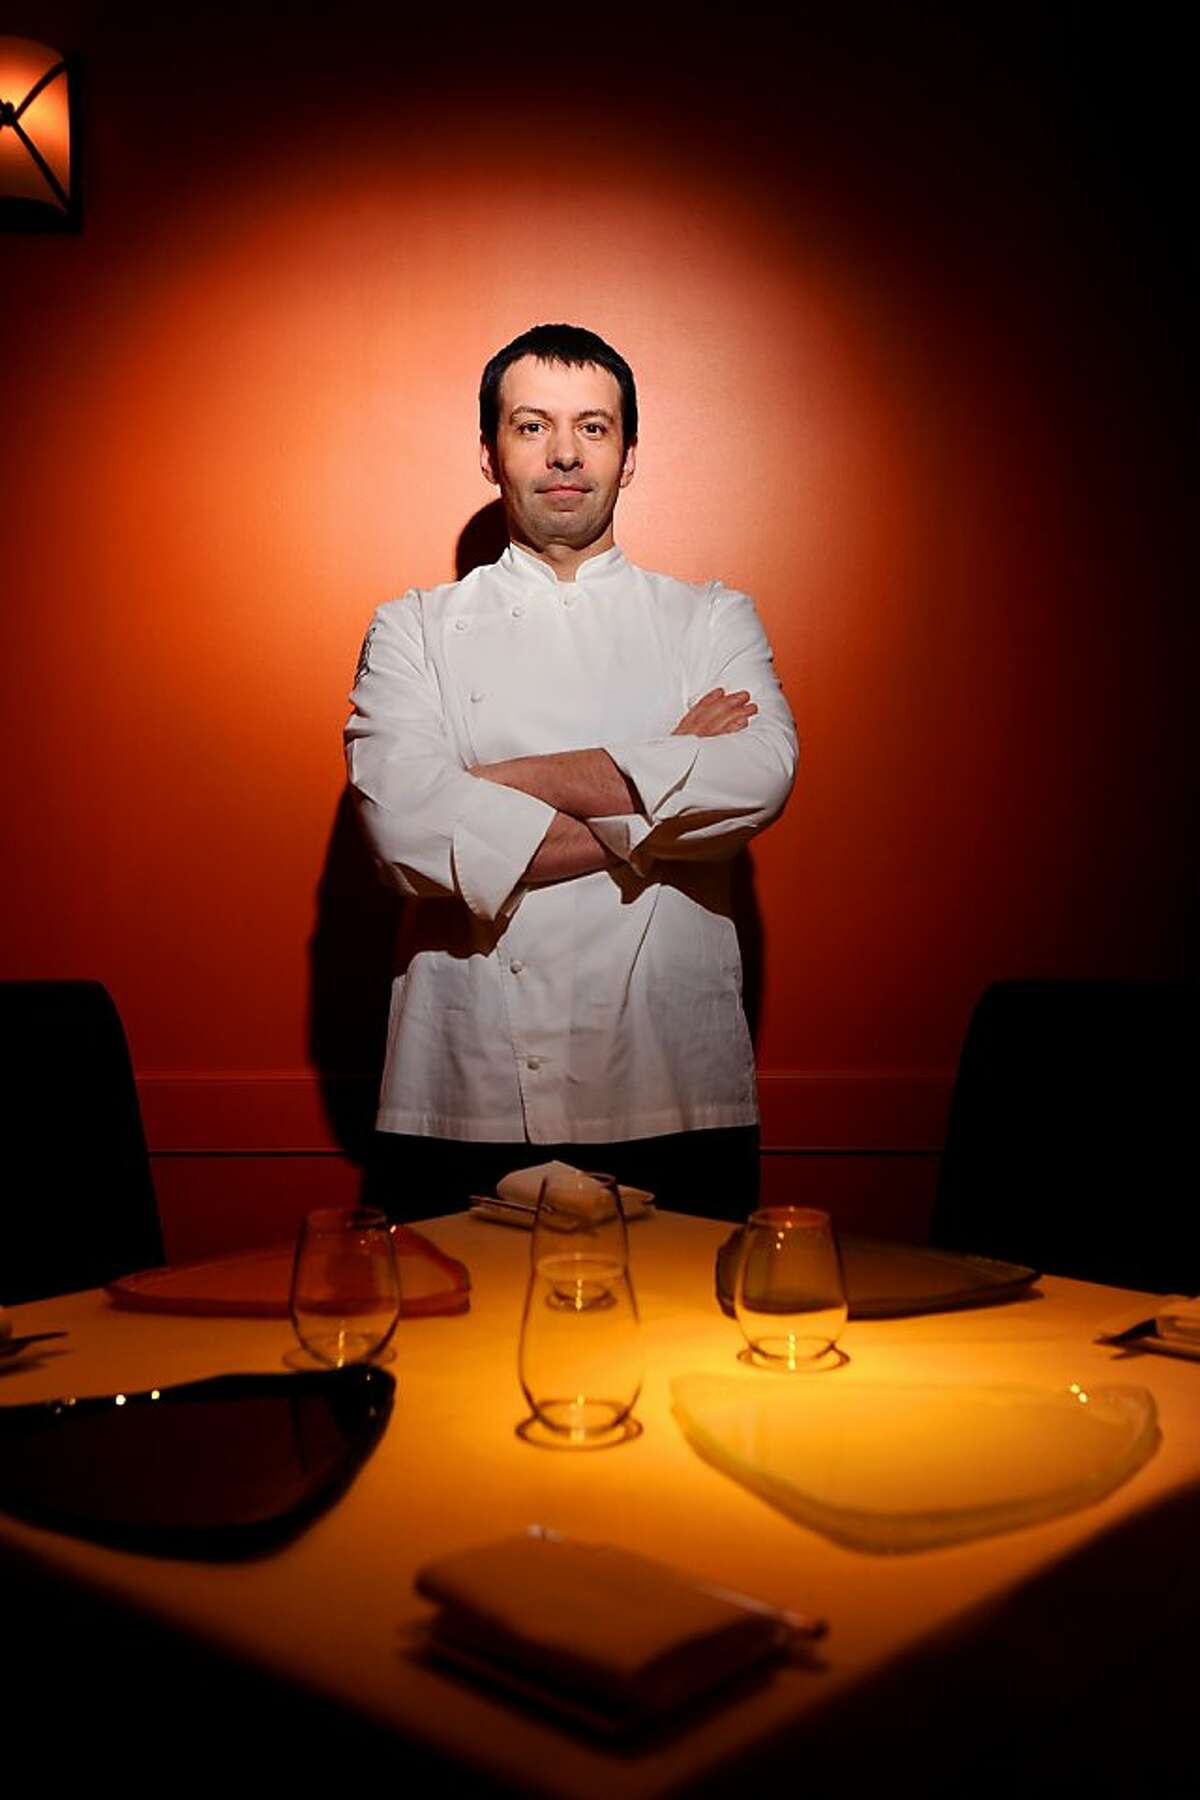 Chef Bruno Chemel poses at Baume on Thursday, April 15, 2010, in Palo Alto, Calif.